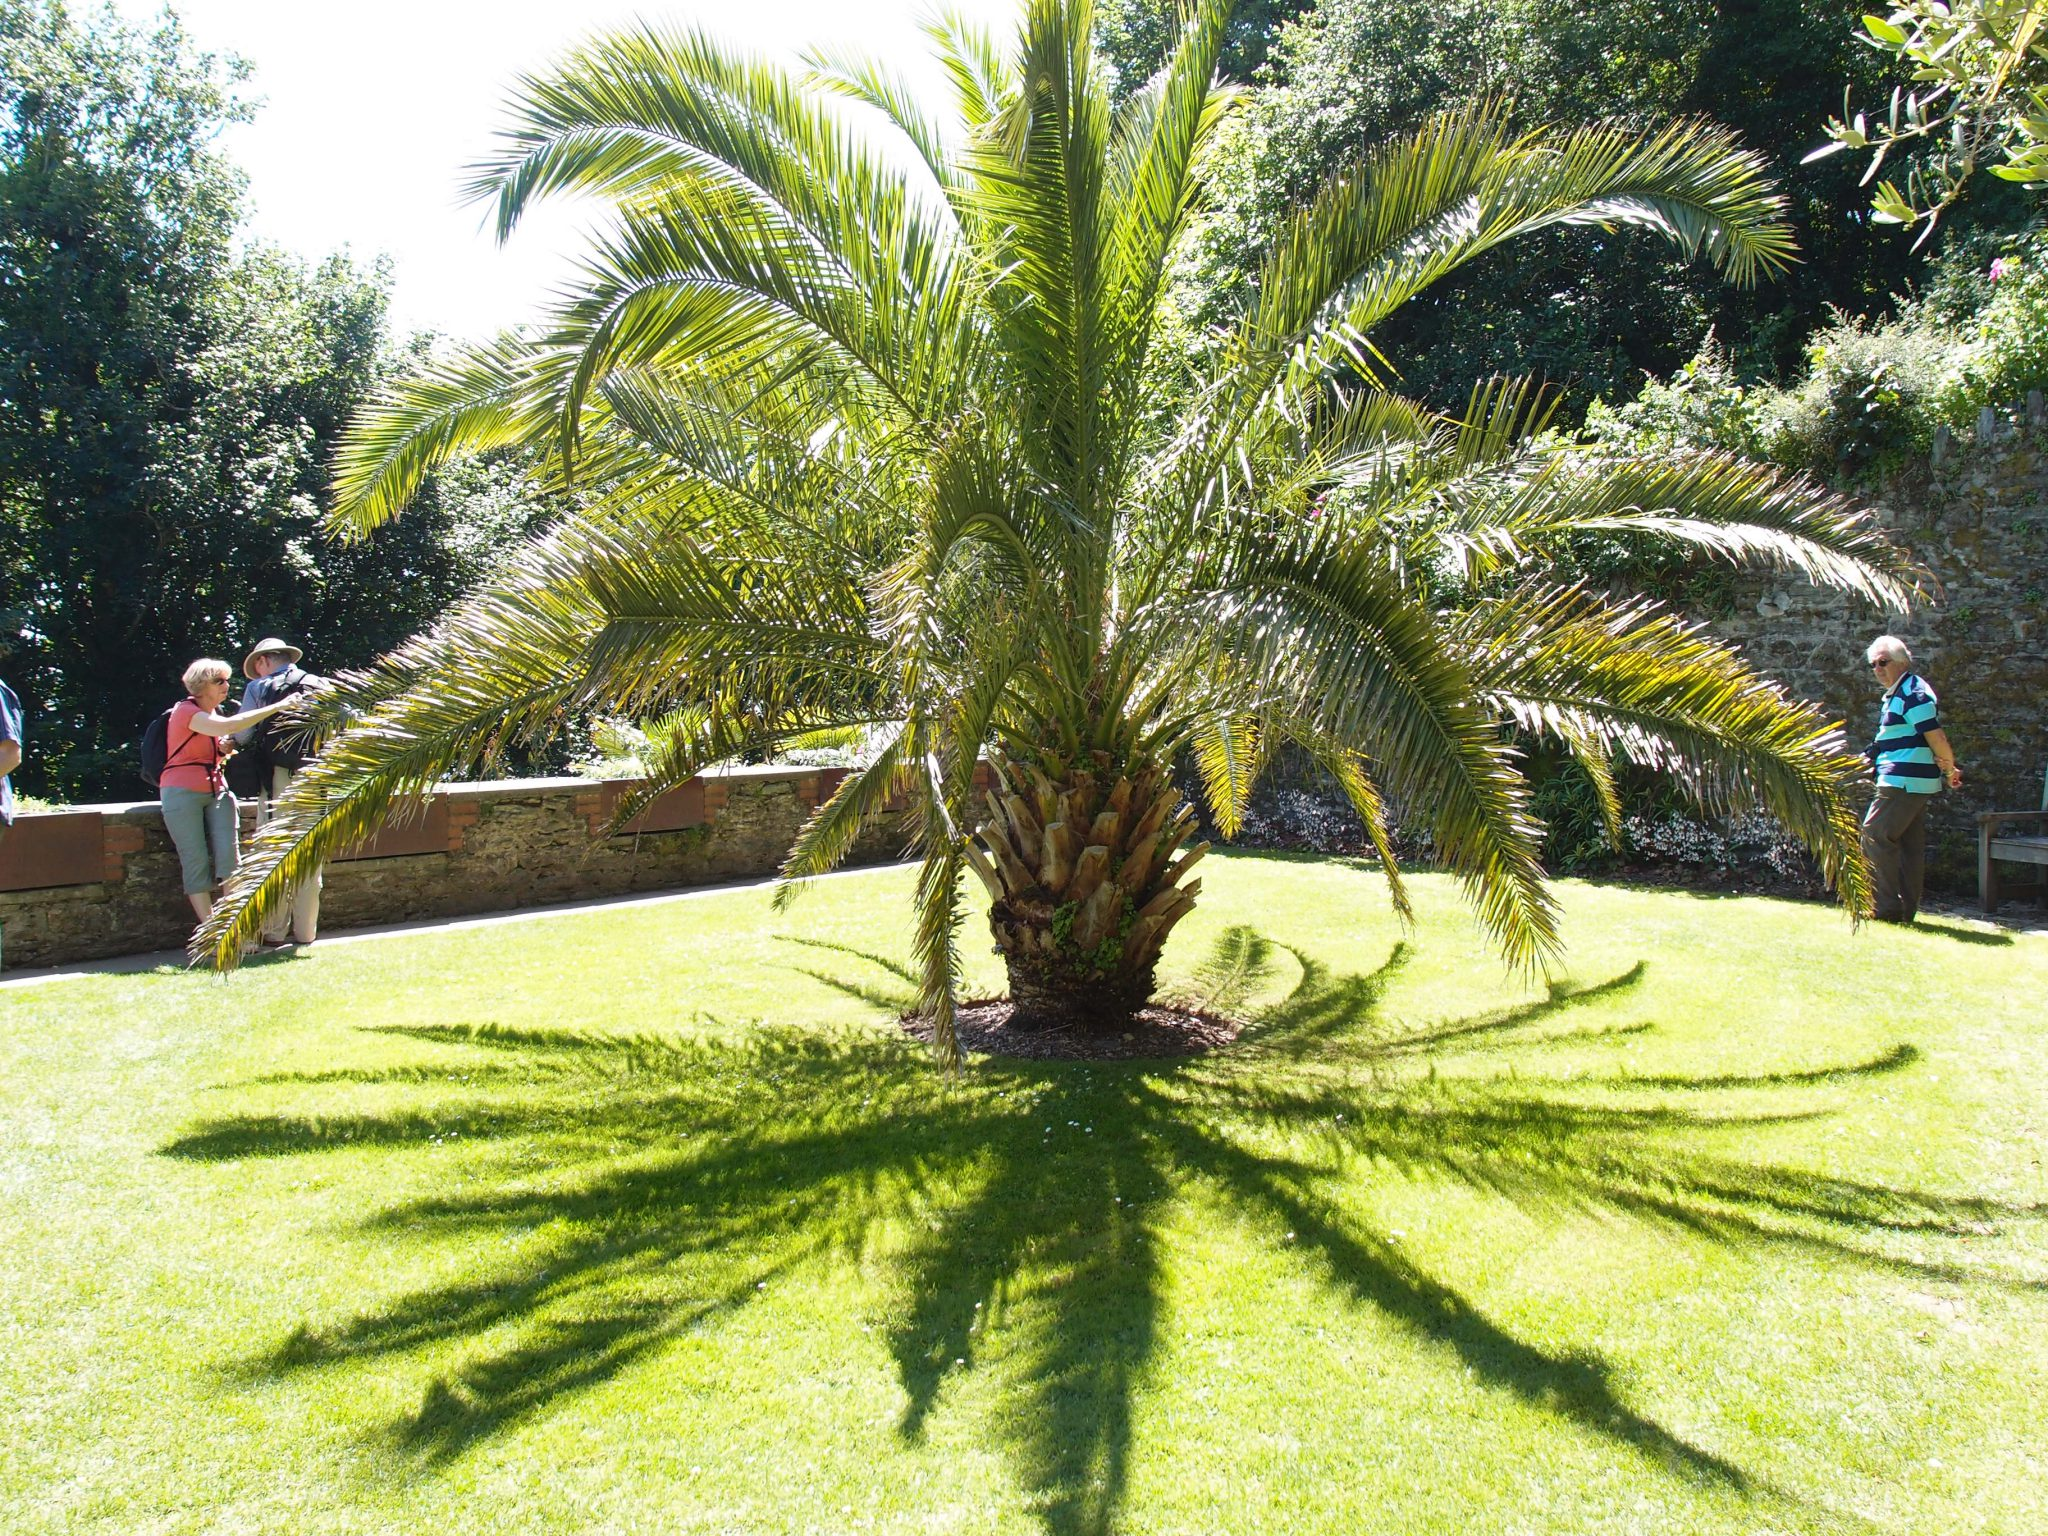 A magnificent Date Palm is planted at the center of the Secret Garden.